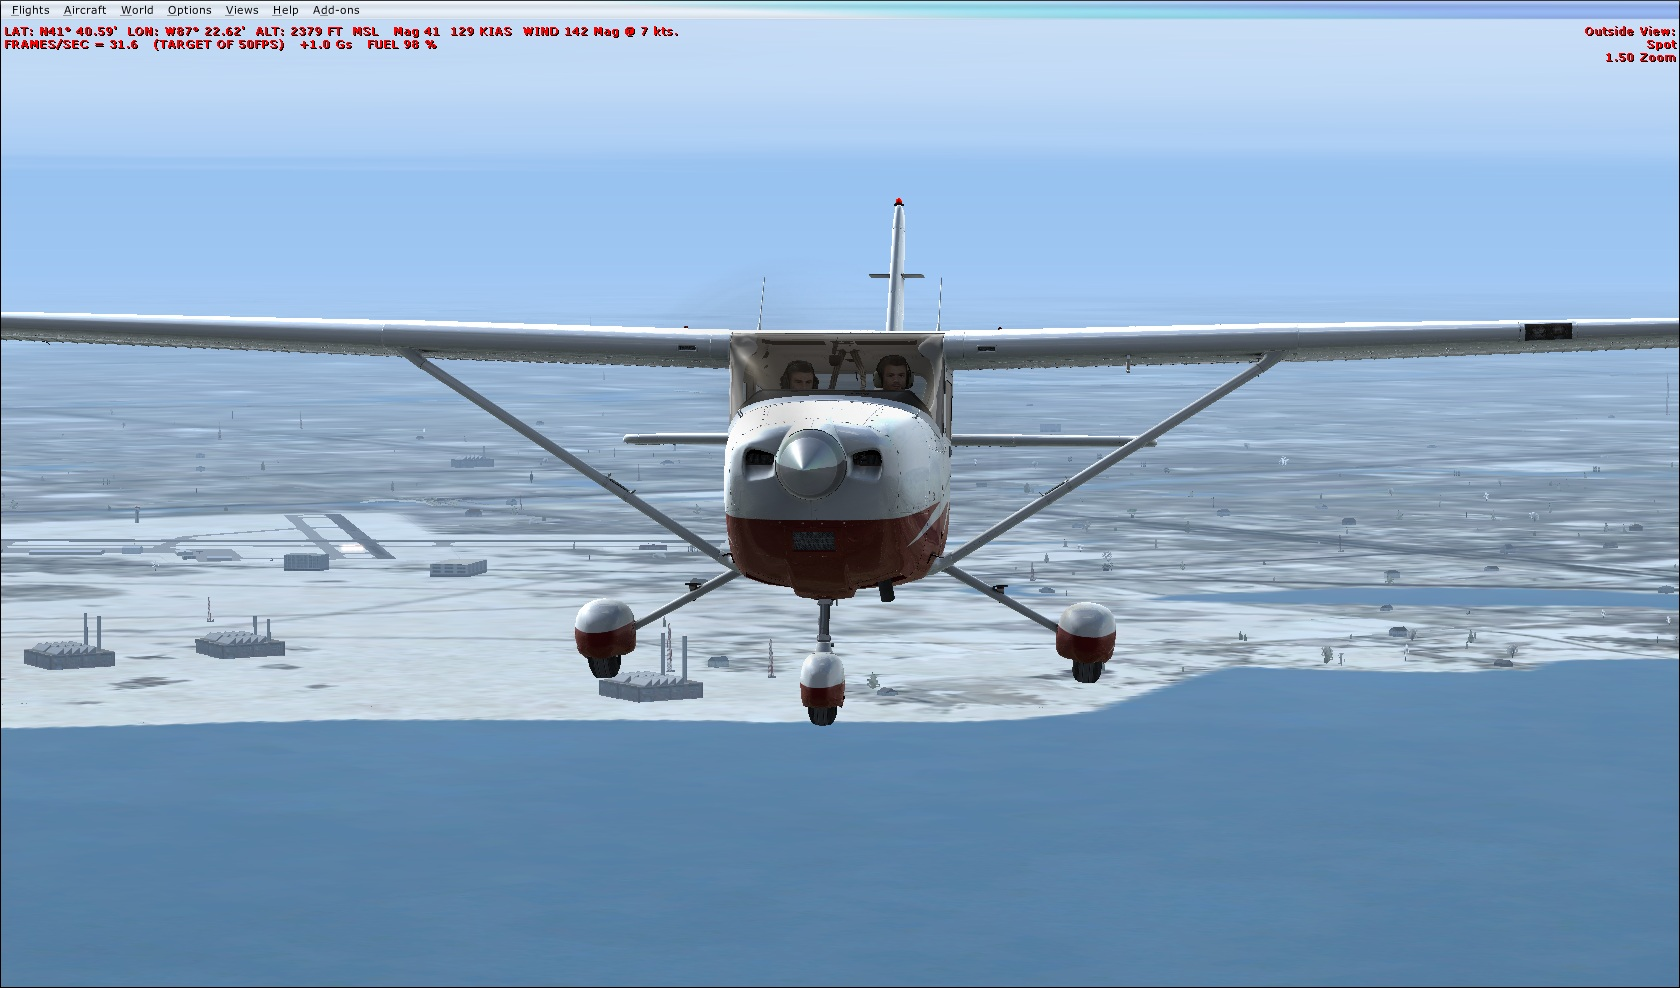 Airborn for first VFR flight of Great lakes tour